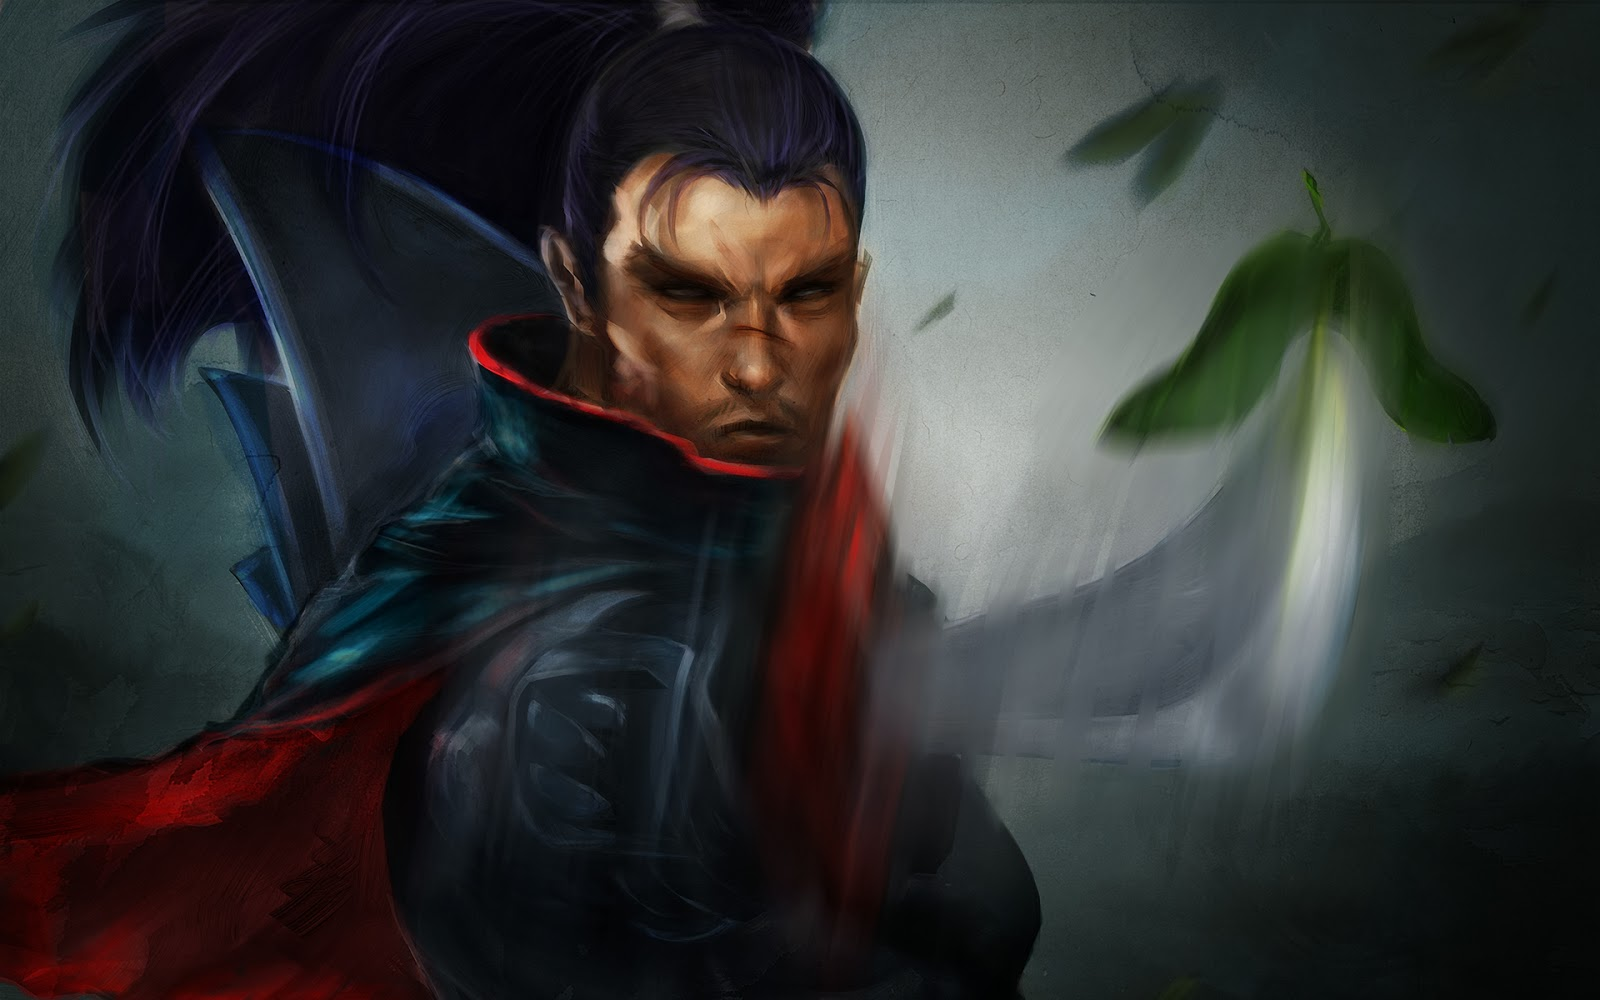 Game wallpaper league of legends yasuo wallpapers iphone with high - Yasuo Champion League Of Legends O1 Wallpaper Hd